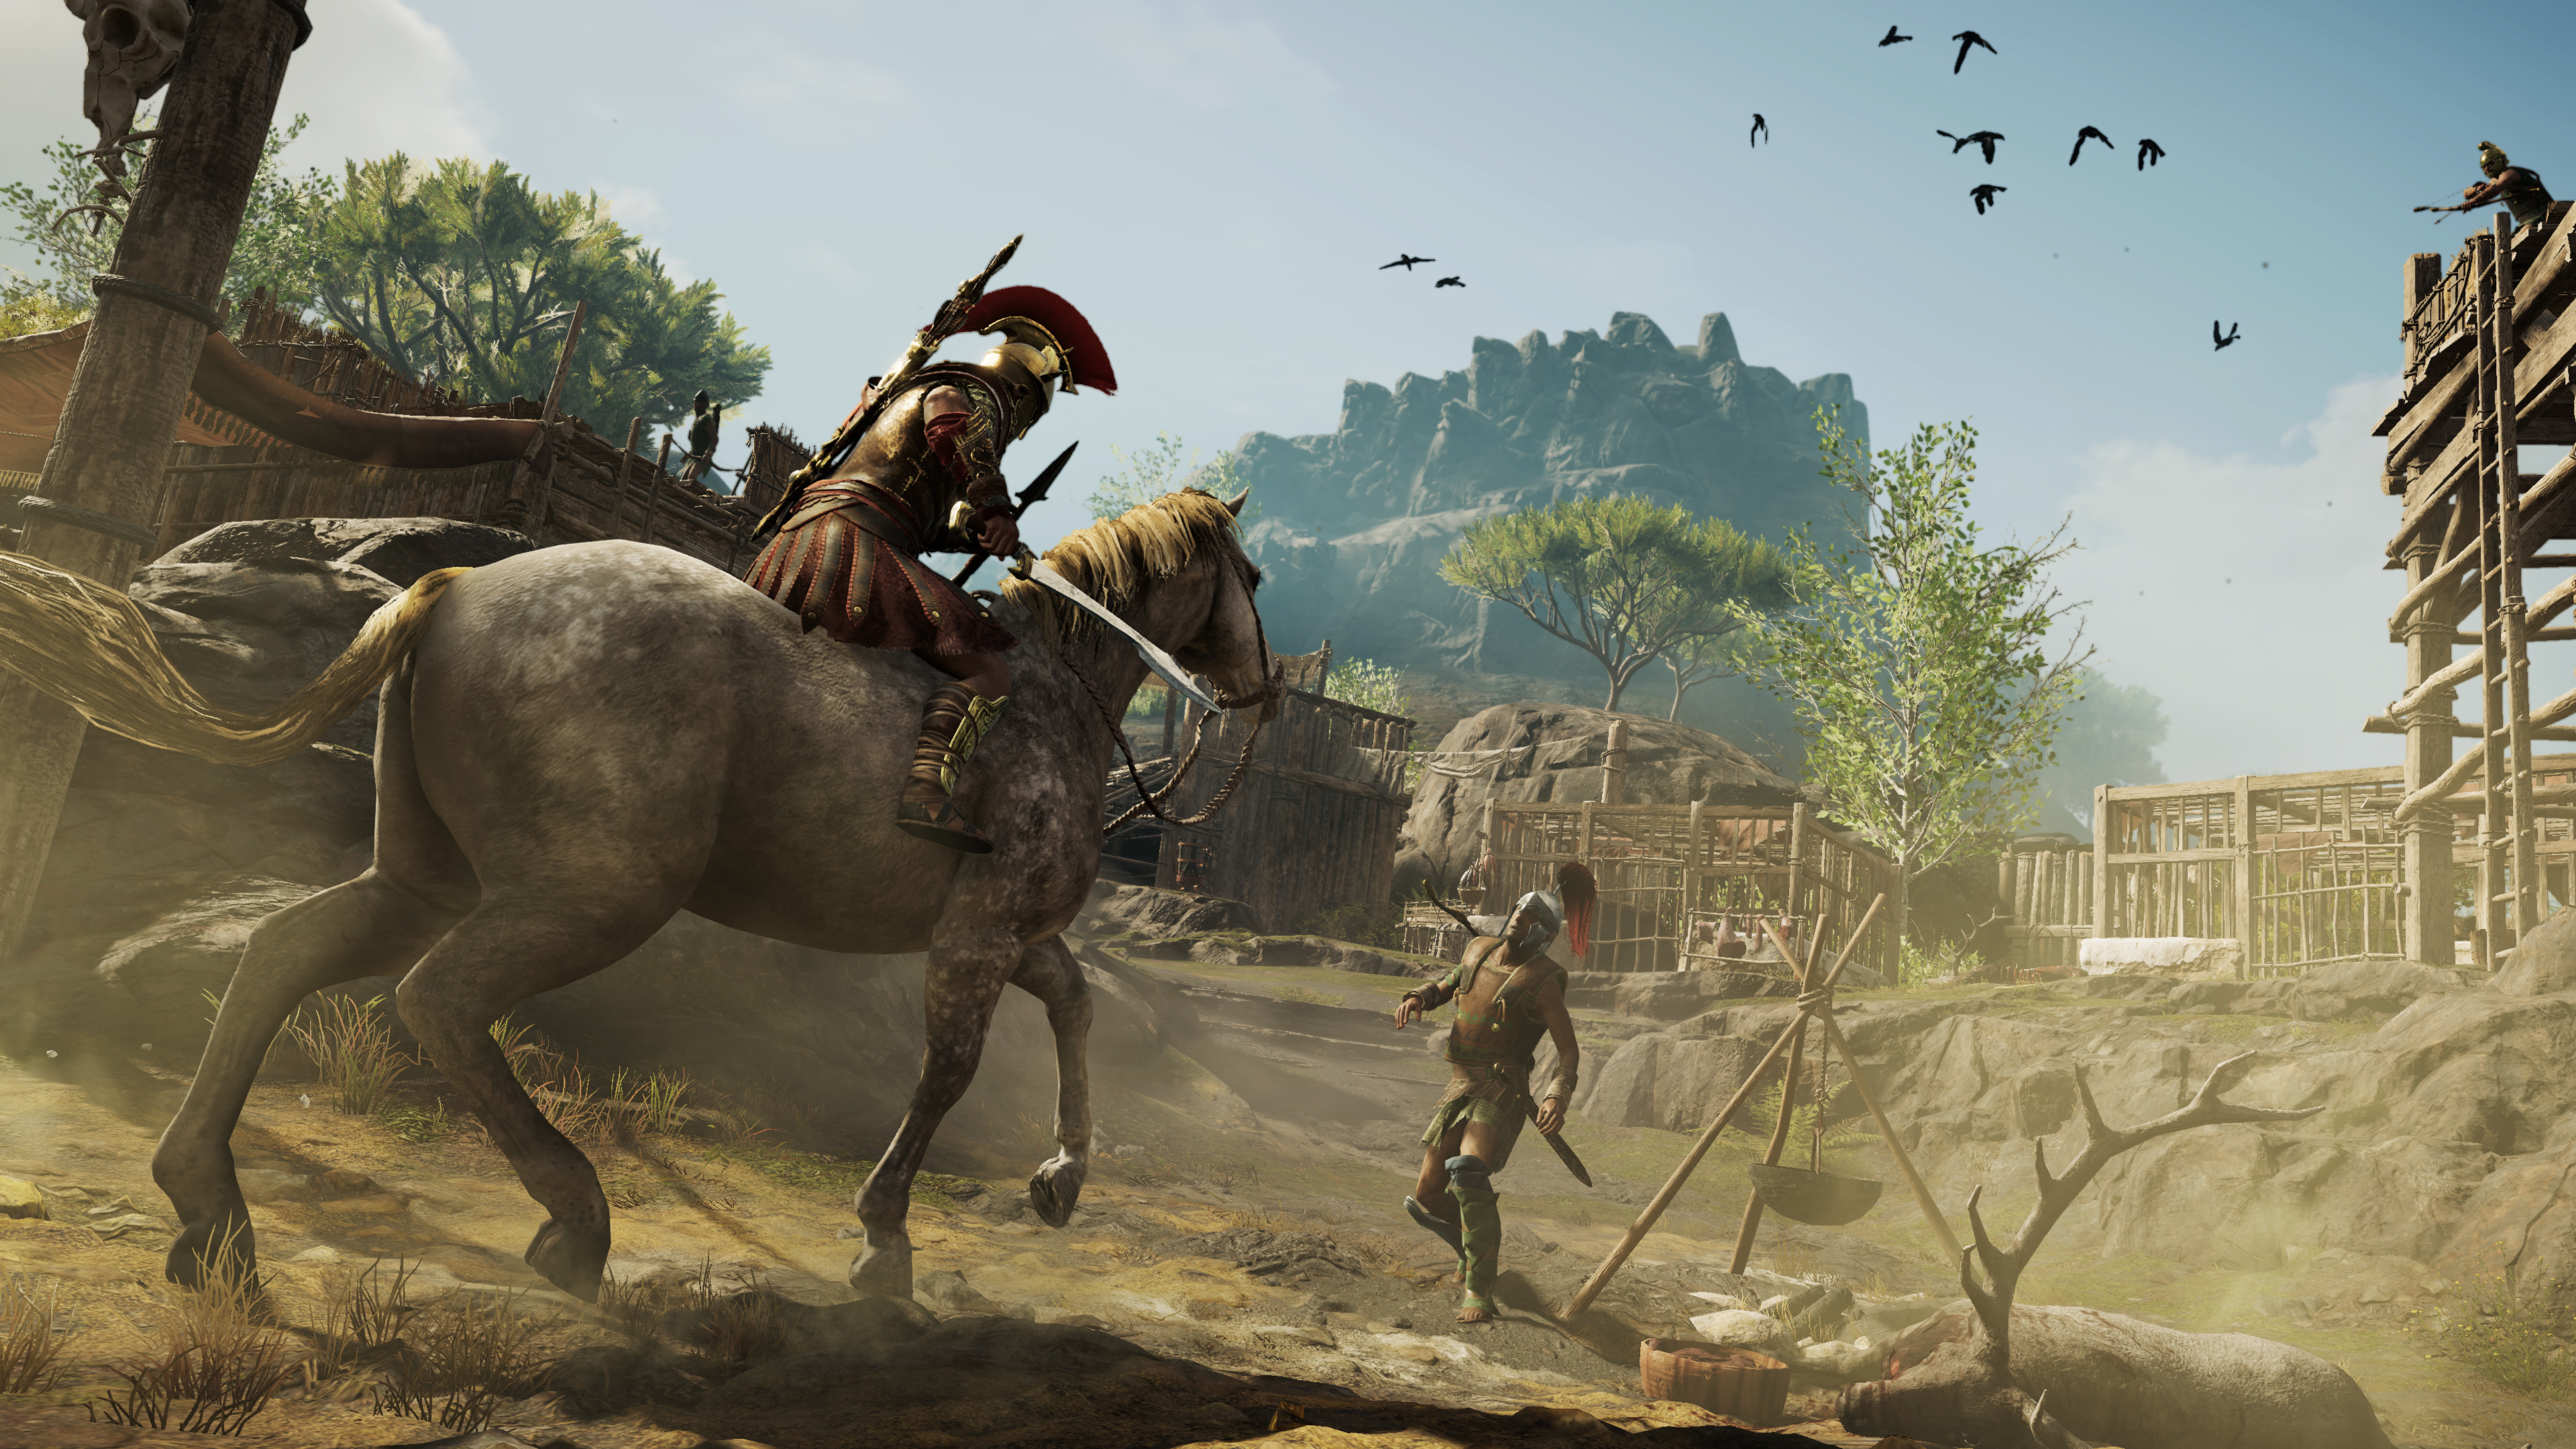 We Played Assassin's Creed Odyssey on Google's Project Stream | Fortune